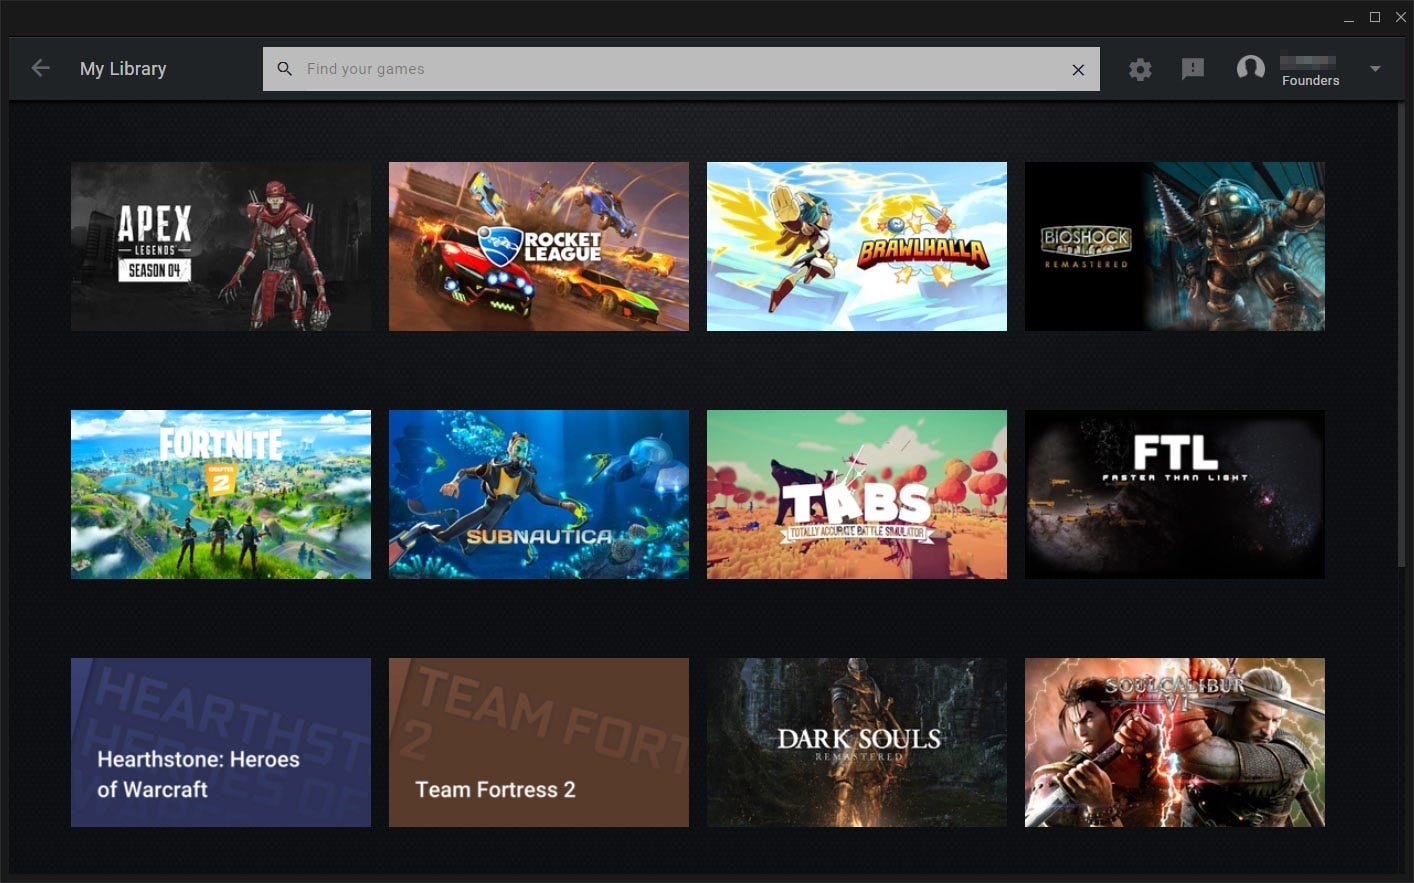 The main GeForce NOW library interface.